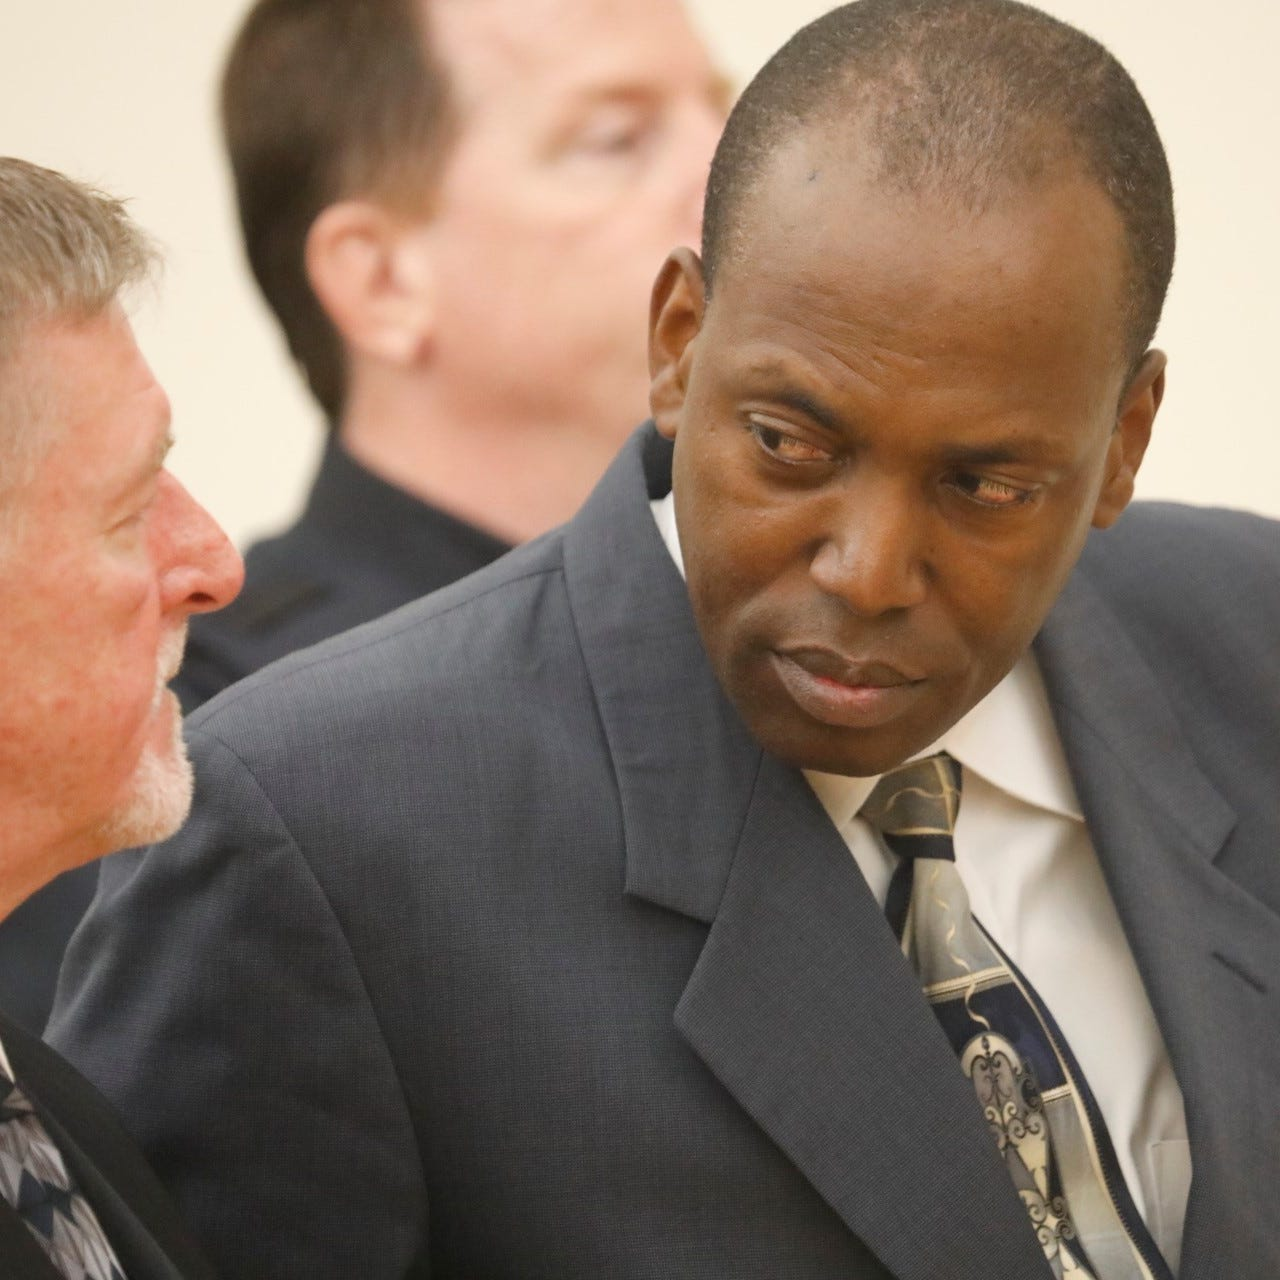 Fonvil sentenced, but Spring Valley still seeks responsible governance